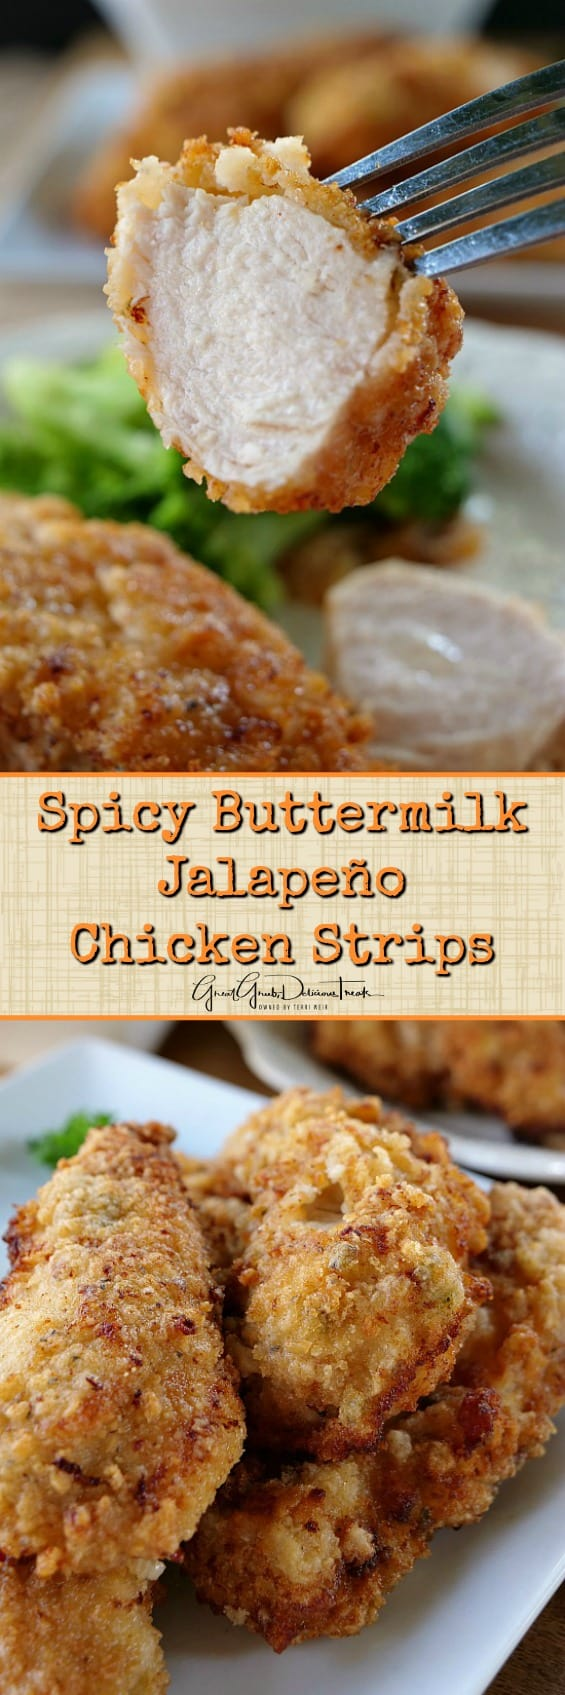 Spicy Buttermilk Jalapeño Chicken Strips